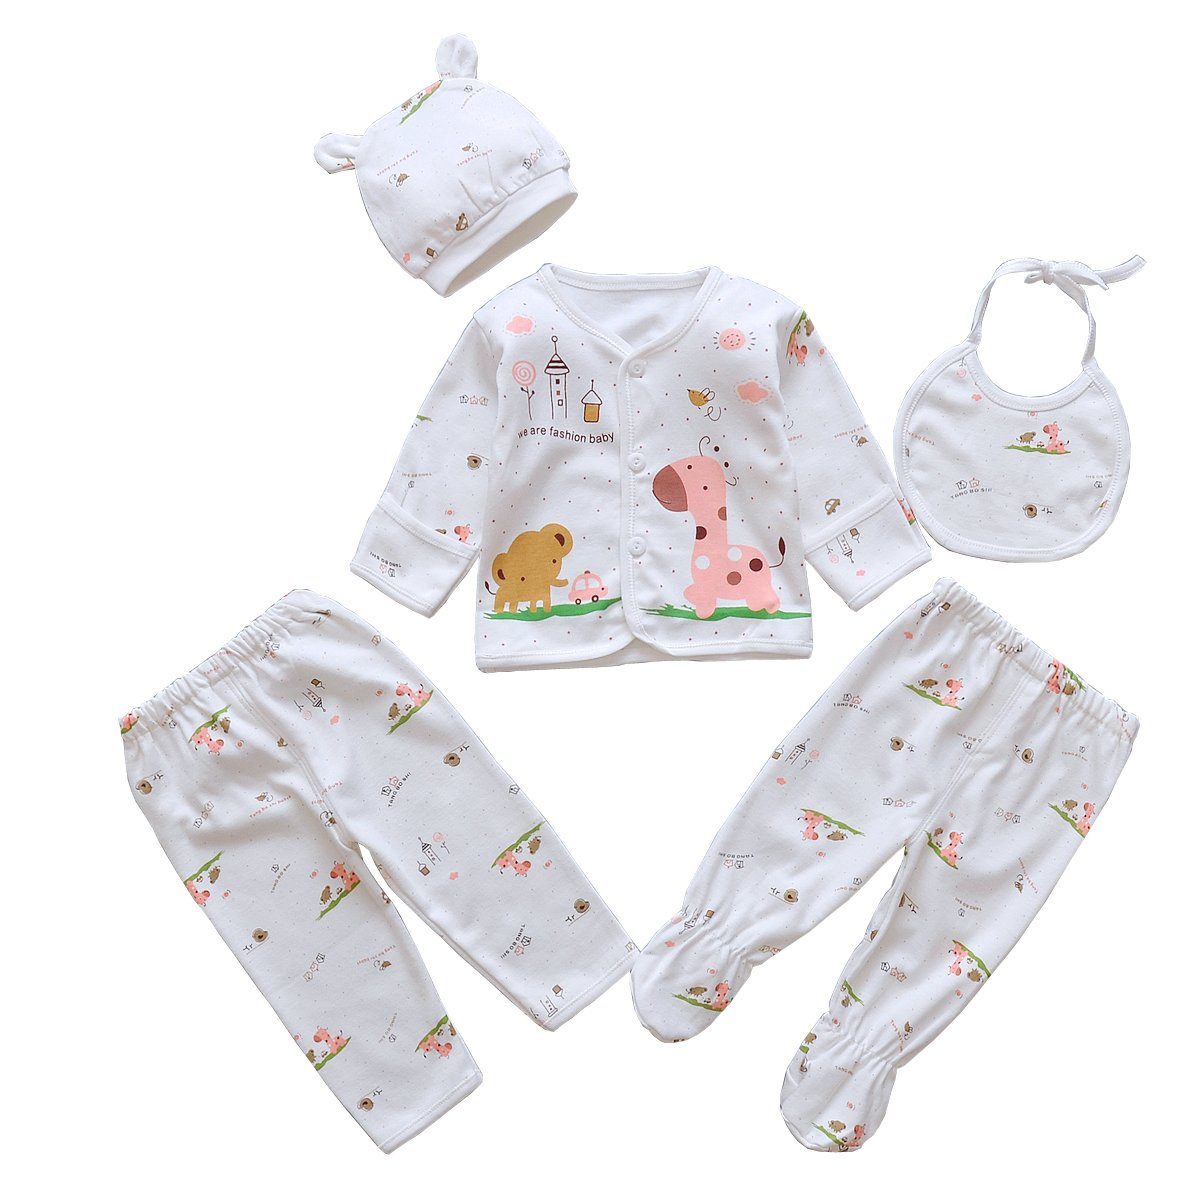 5pcs Newborn Baby Boy Girl Clothes Sets Unisex Infant Outfits Animals C00001-Pink